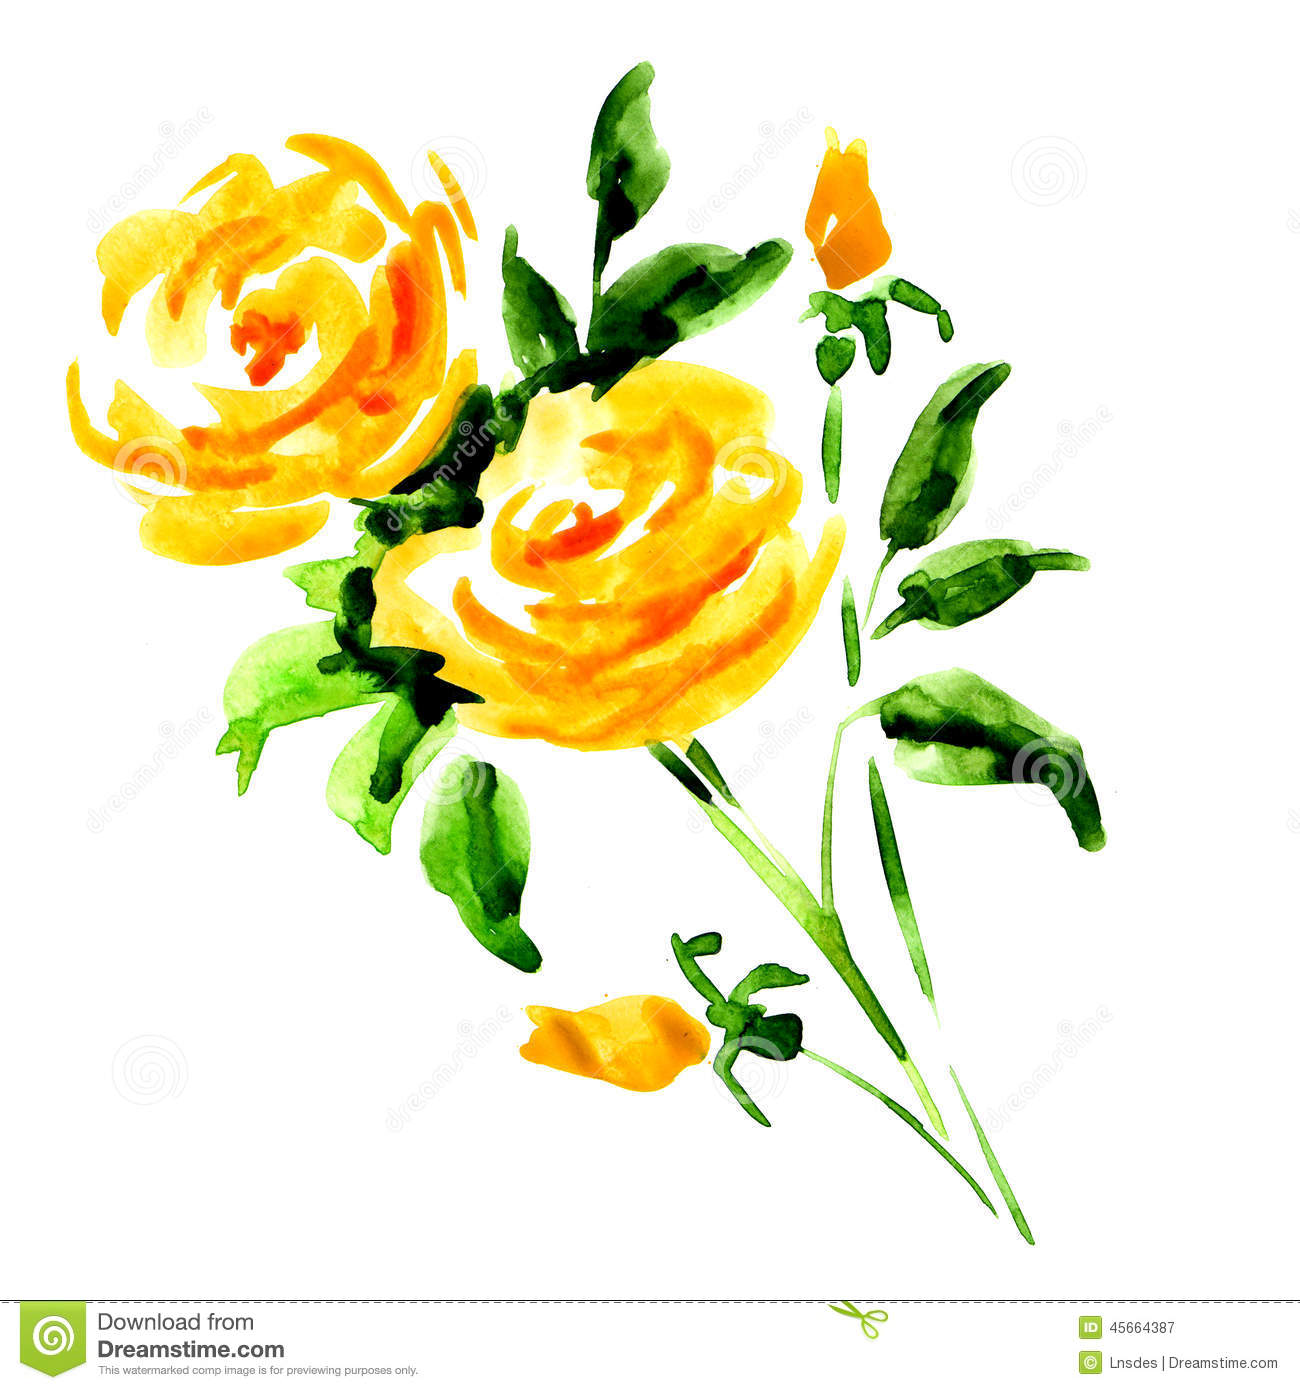 Yellow rose bouquet isolated, watercolor painting on white background.